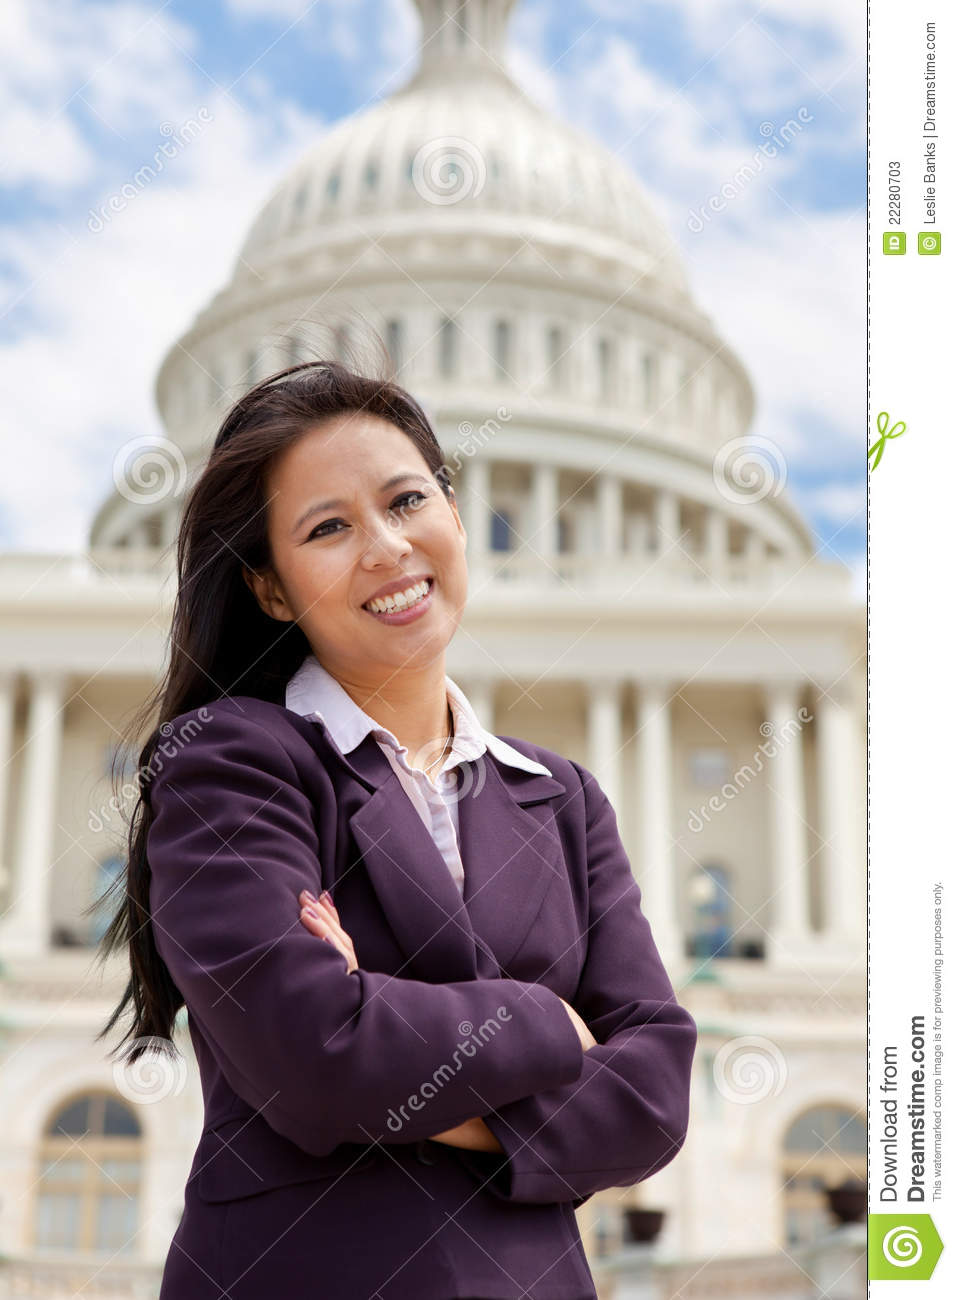 capitol asian personals You are welcome to use polyamorous passions solely as a dating site, since it has all the major features found on mainstream dating sites (eg photo personals, .